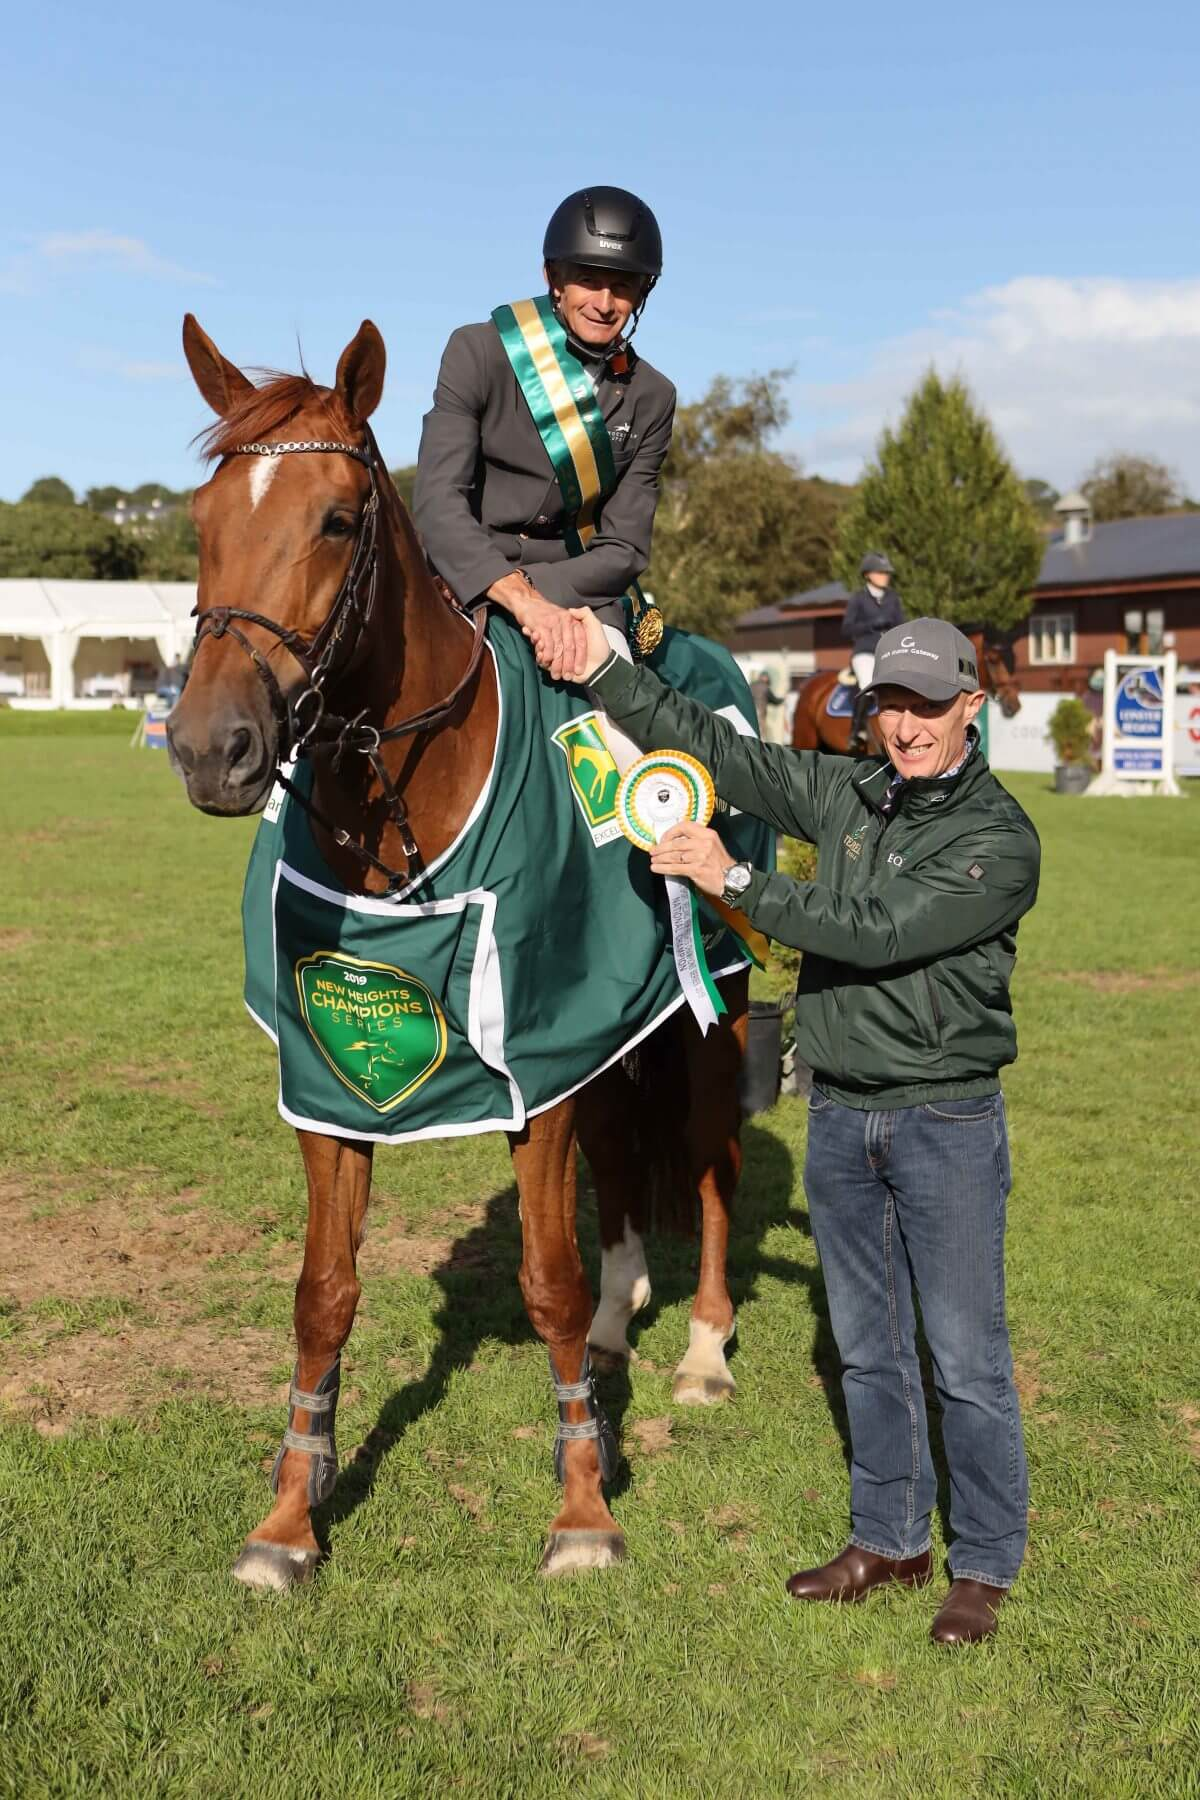 Francis Connors crowned 2019 New Heights Champions Series winner